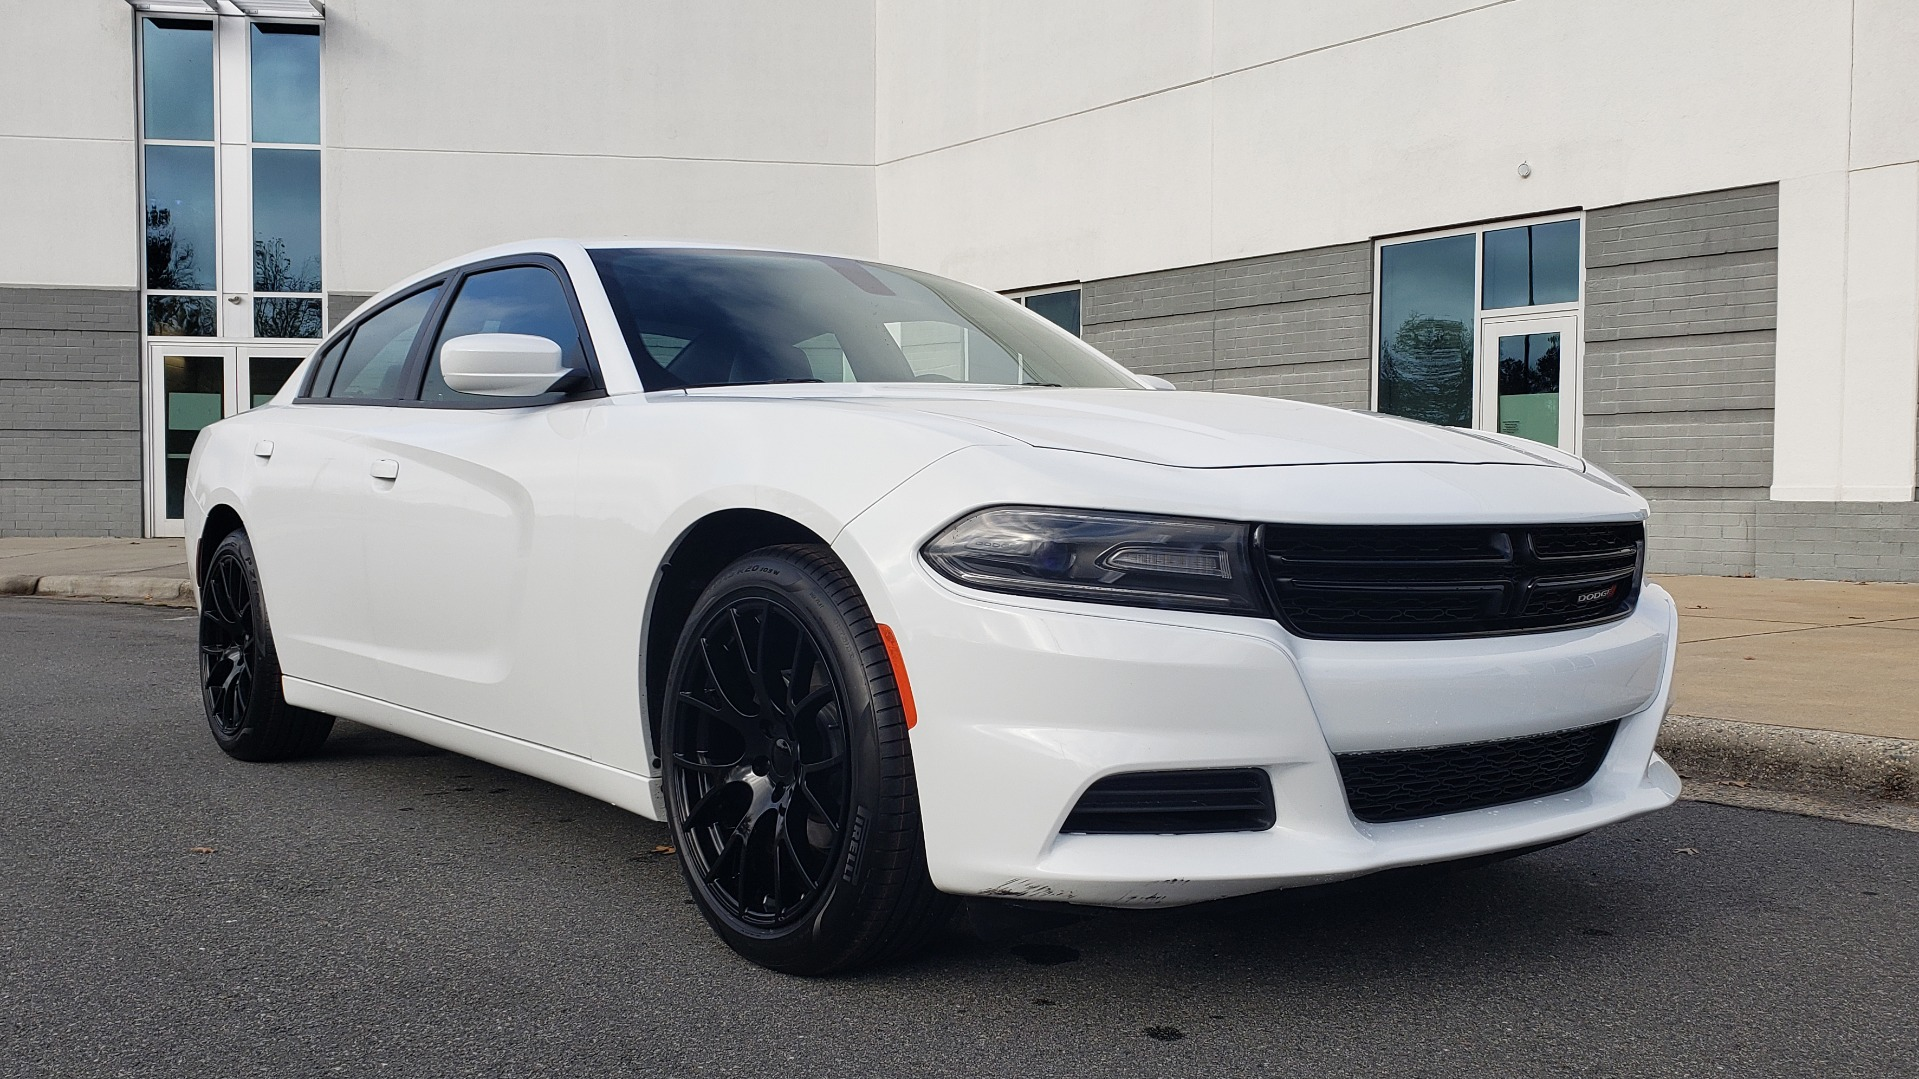 Used 2020 Dodge CHARGER SXT / RWD / V6 / 8-SPD AUTO / LTHR / HTD STS / SUNROOF / REARVIEW for sale $25,995 at Formula Imports in Charlotte NC 28227 2